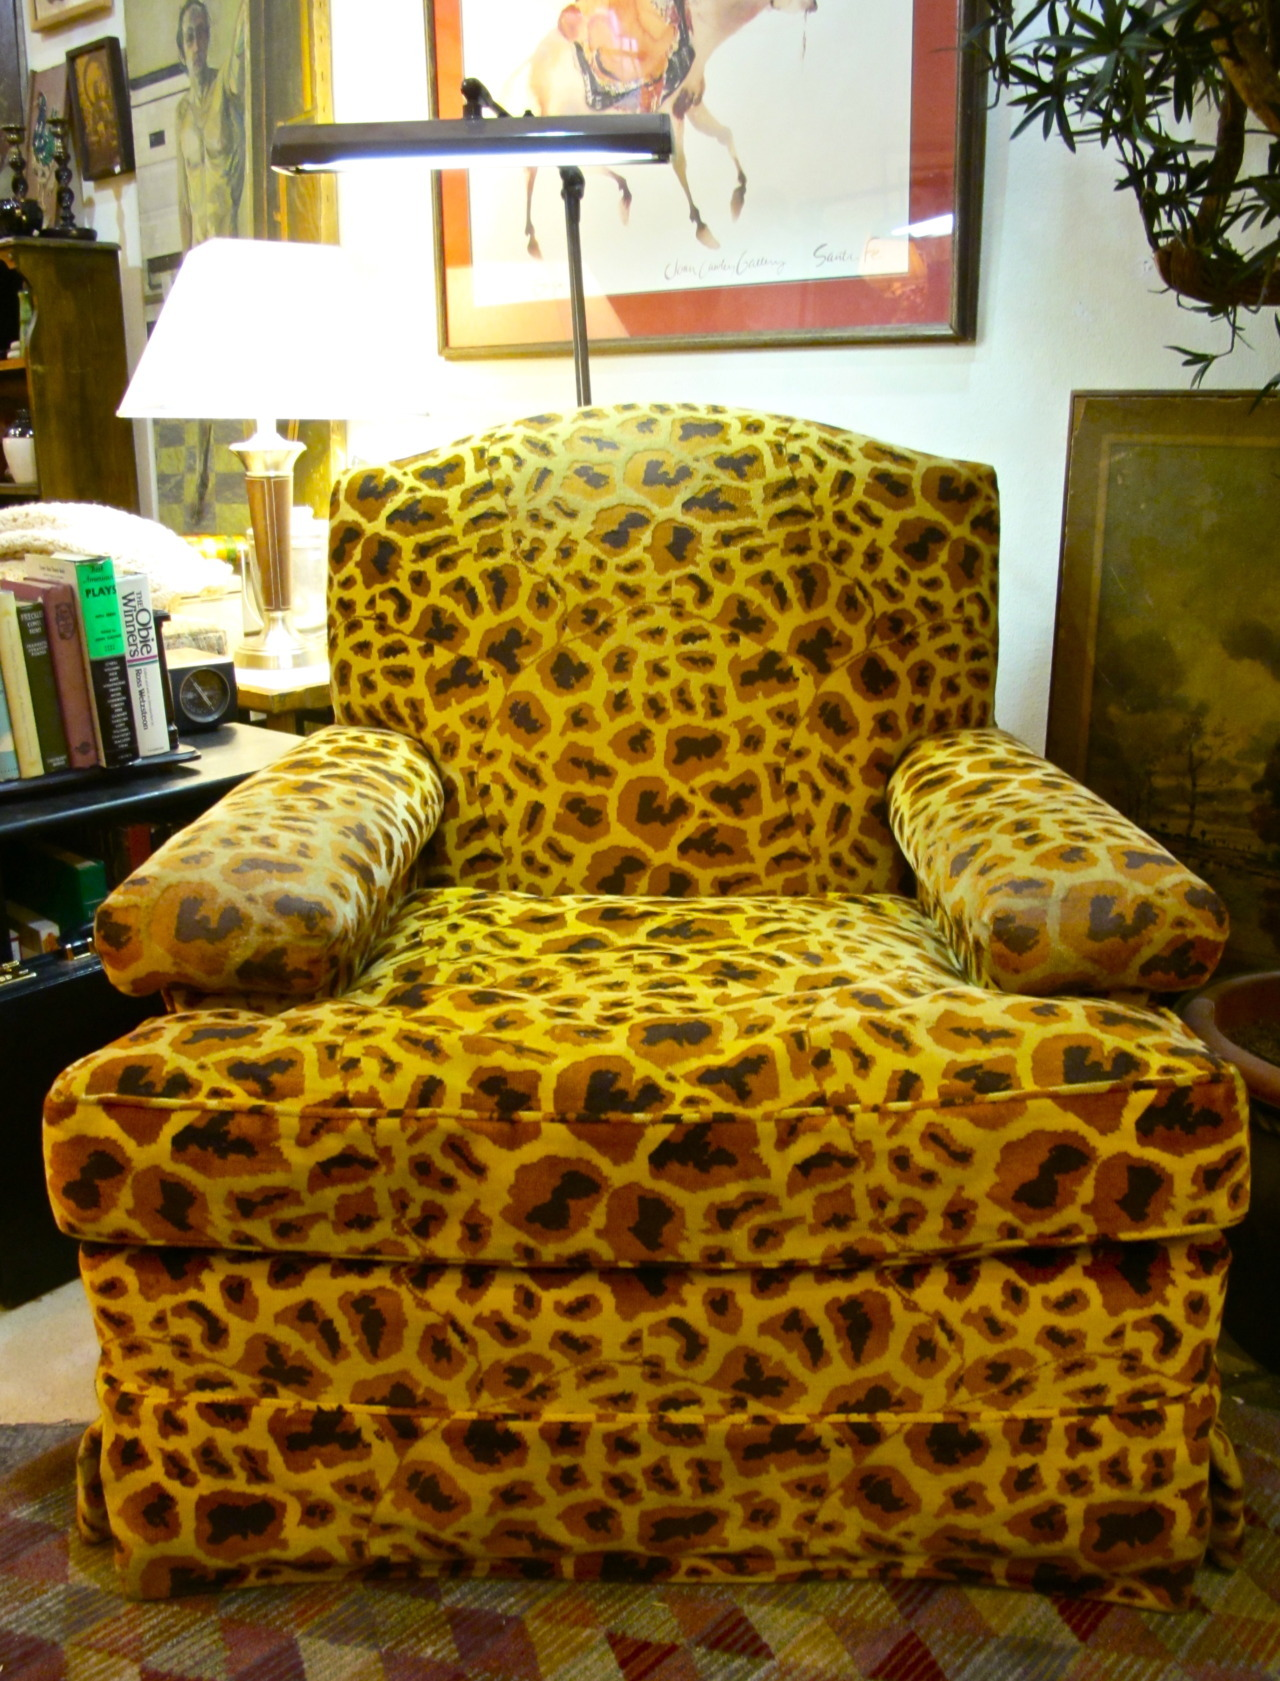 curethriftshop:  CURE CLOSEUP: REVEALED crazy-cool leopard print arm chair Stop by if you're on the hunt for a WILD addition to your home!